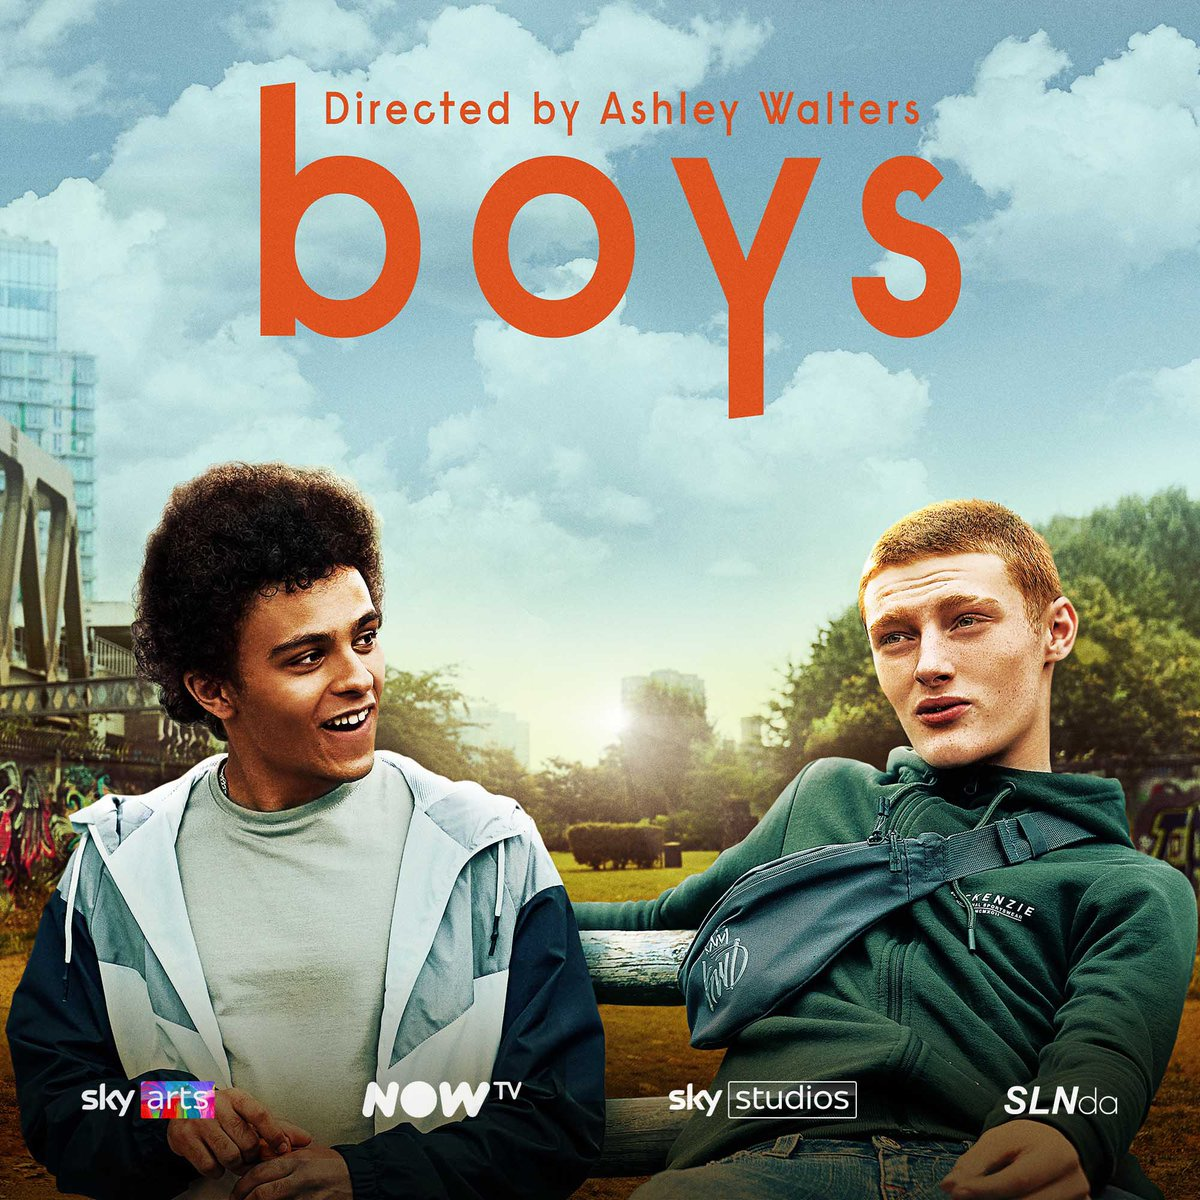 Don't forget. Tonight, 10PM, @AshleyWalters82 directorial debut BOYS premiers on Sky Arts! (Freeview Channel 11). It's a short film about teens growing up in the endz, and is a heartfelt, urban story about family, responsibility and choice. Don't miss it. #awboys